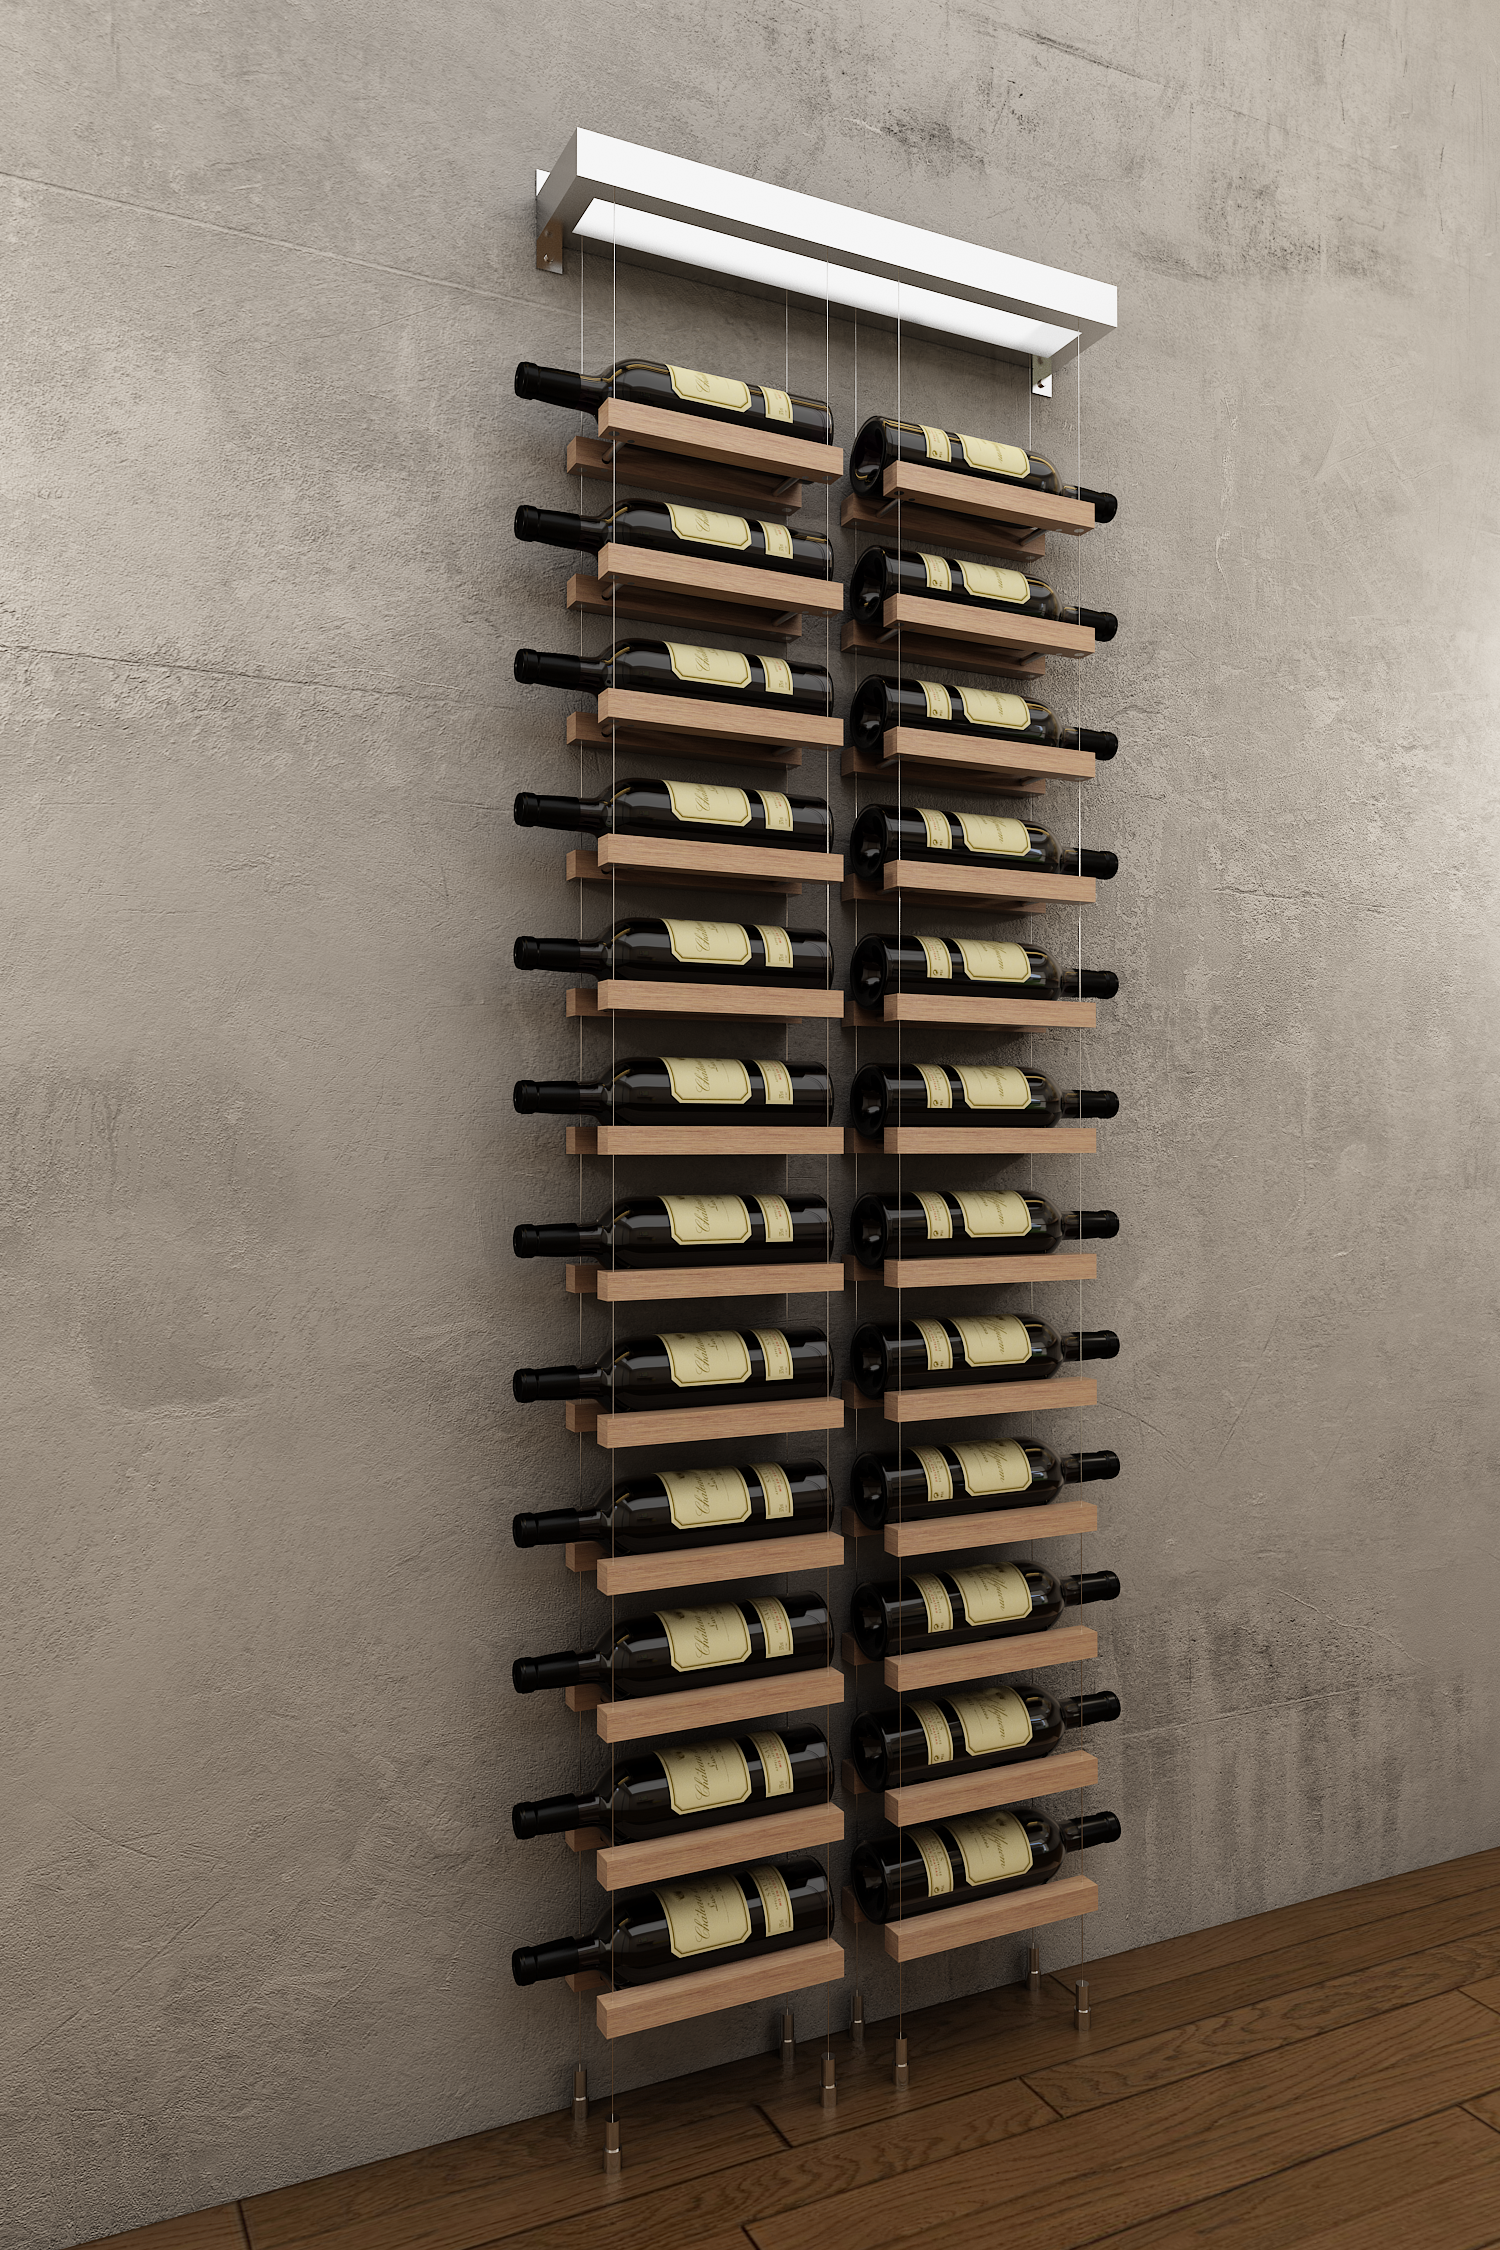 Wm2l1 Chrome Modern Wine Rack Wall Mounted Wine Rack Wall Hanging Wine Rack